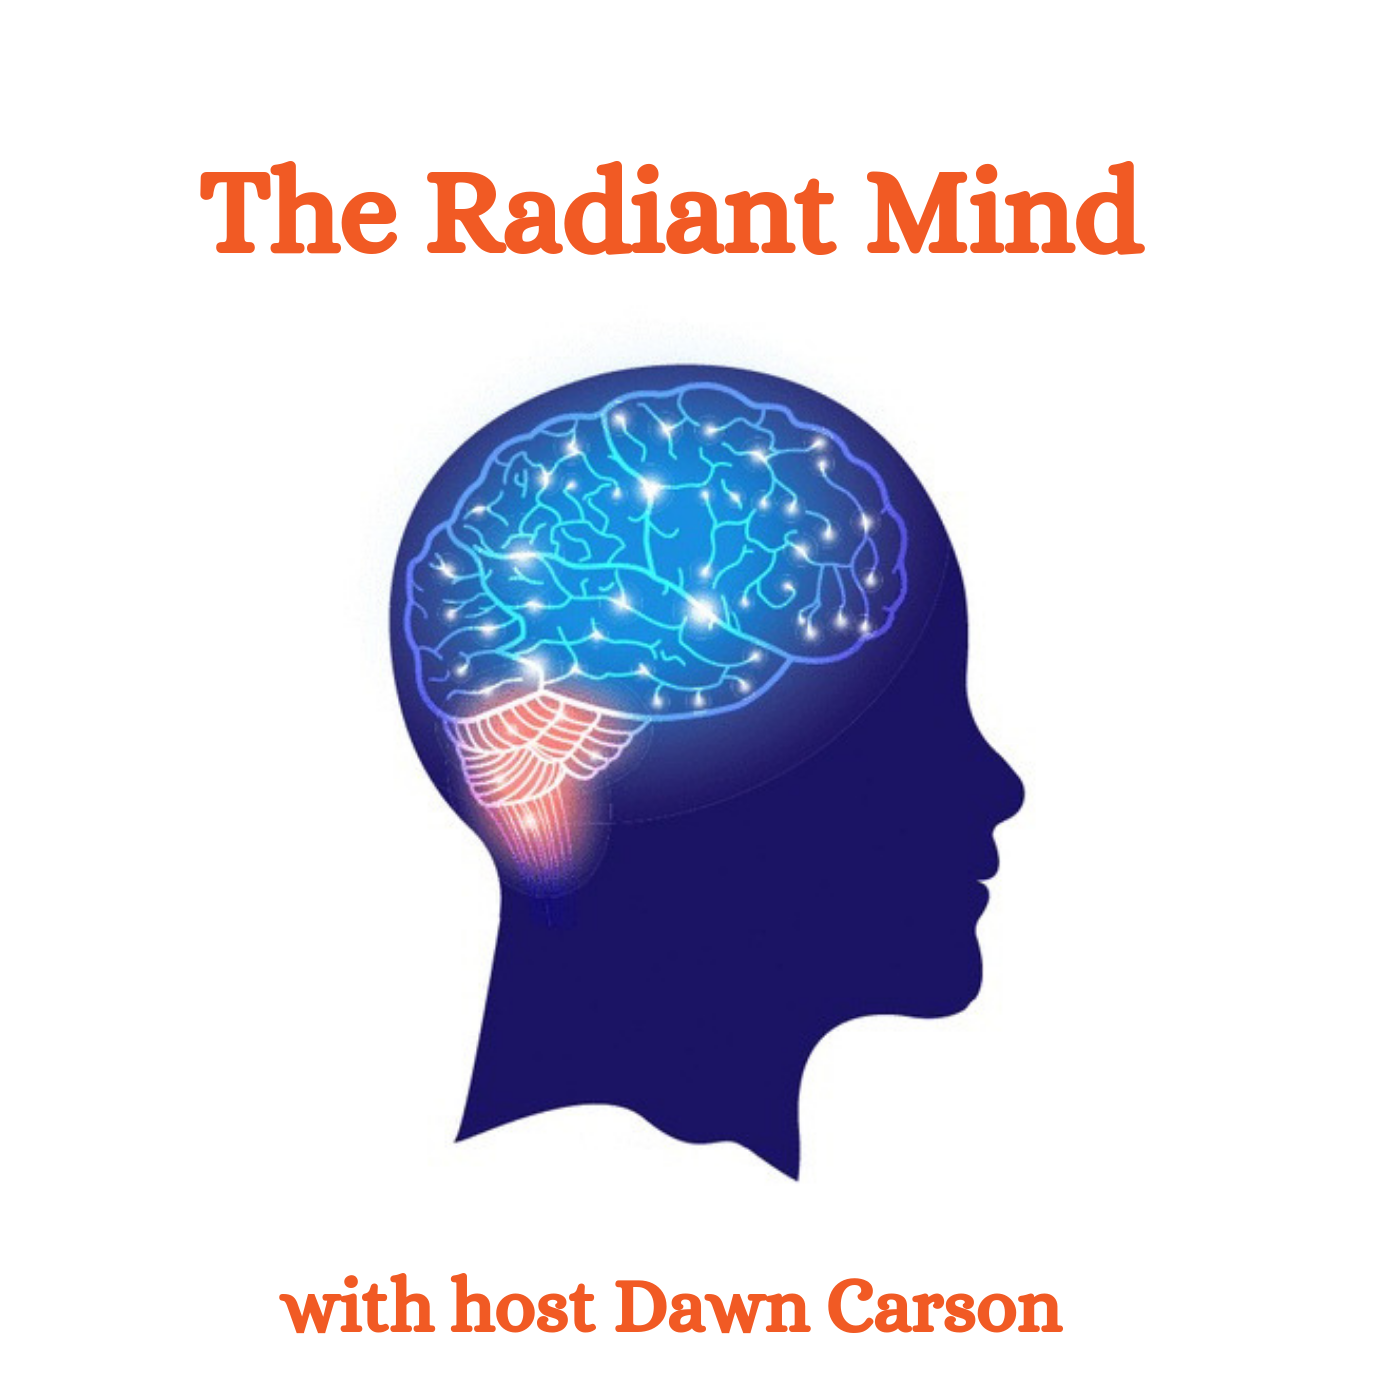 The Radiant Mind